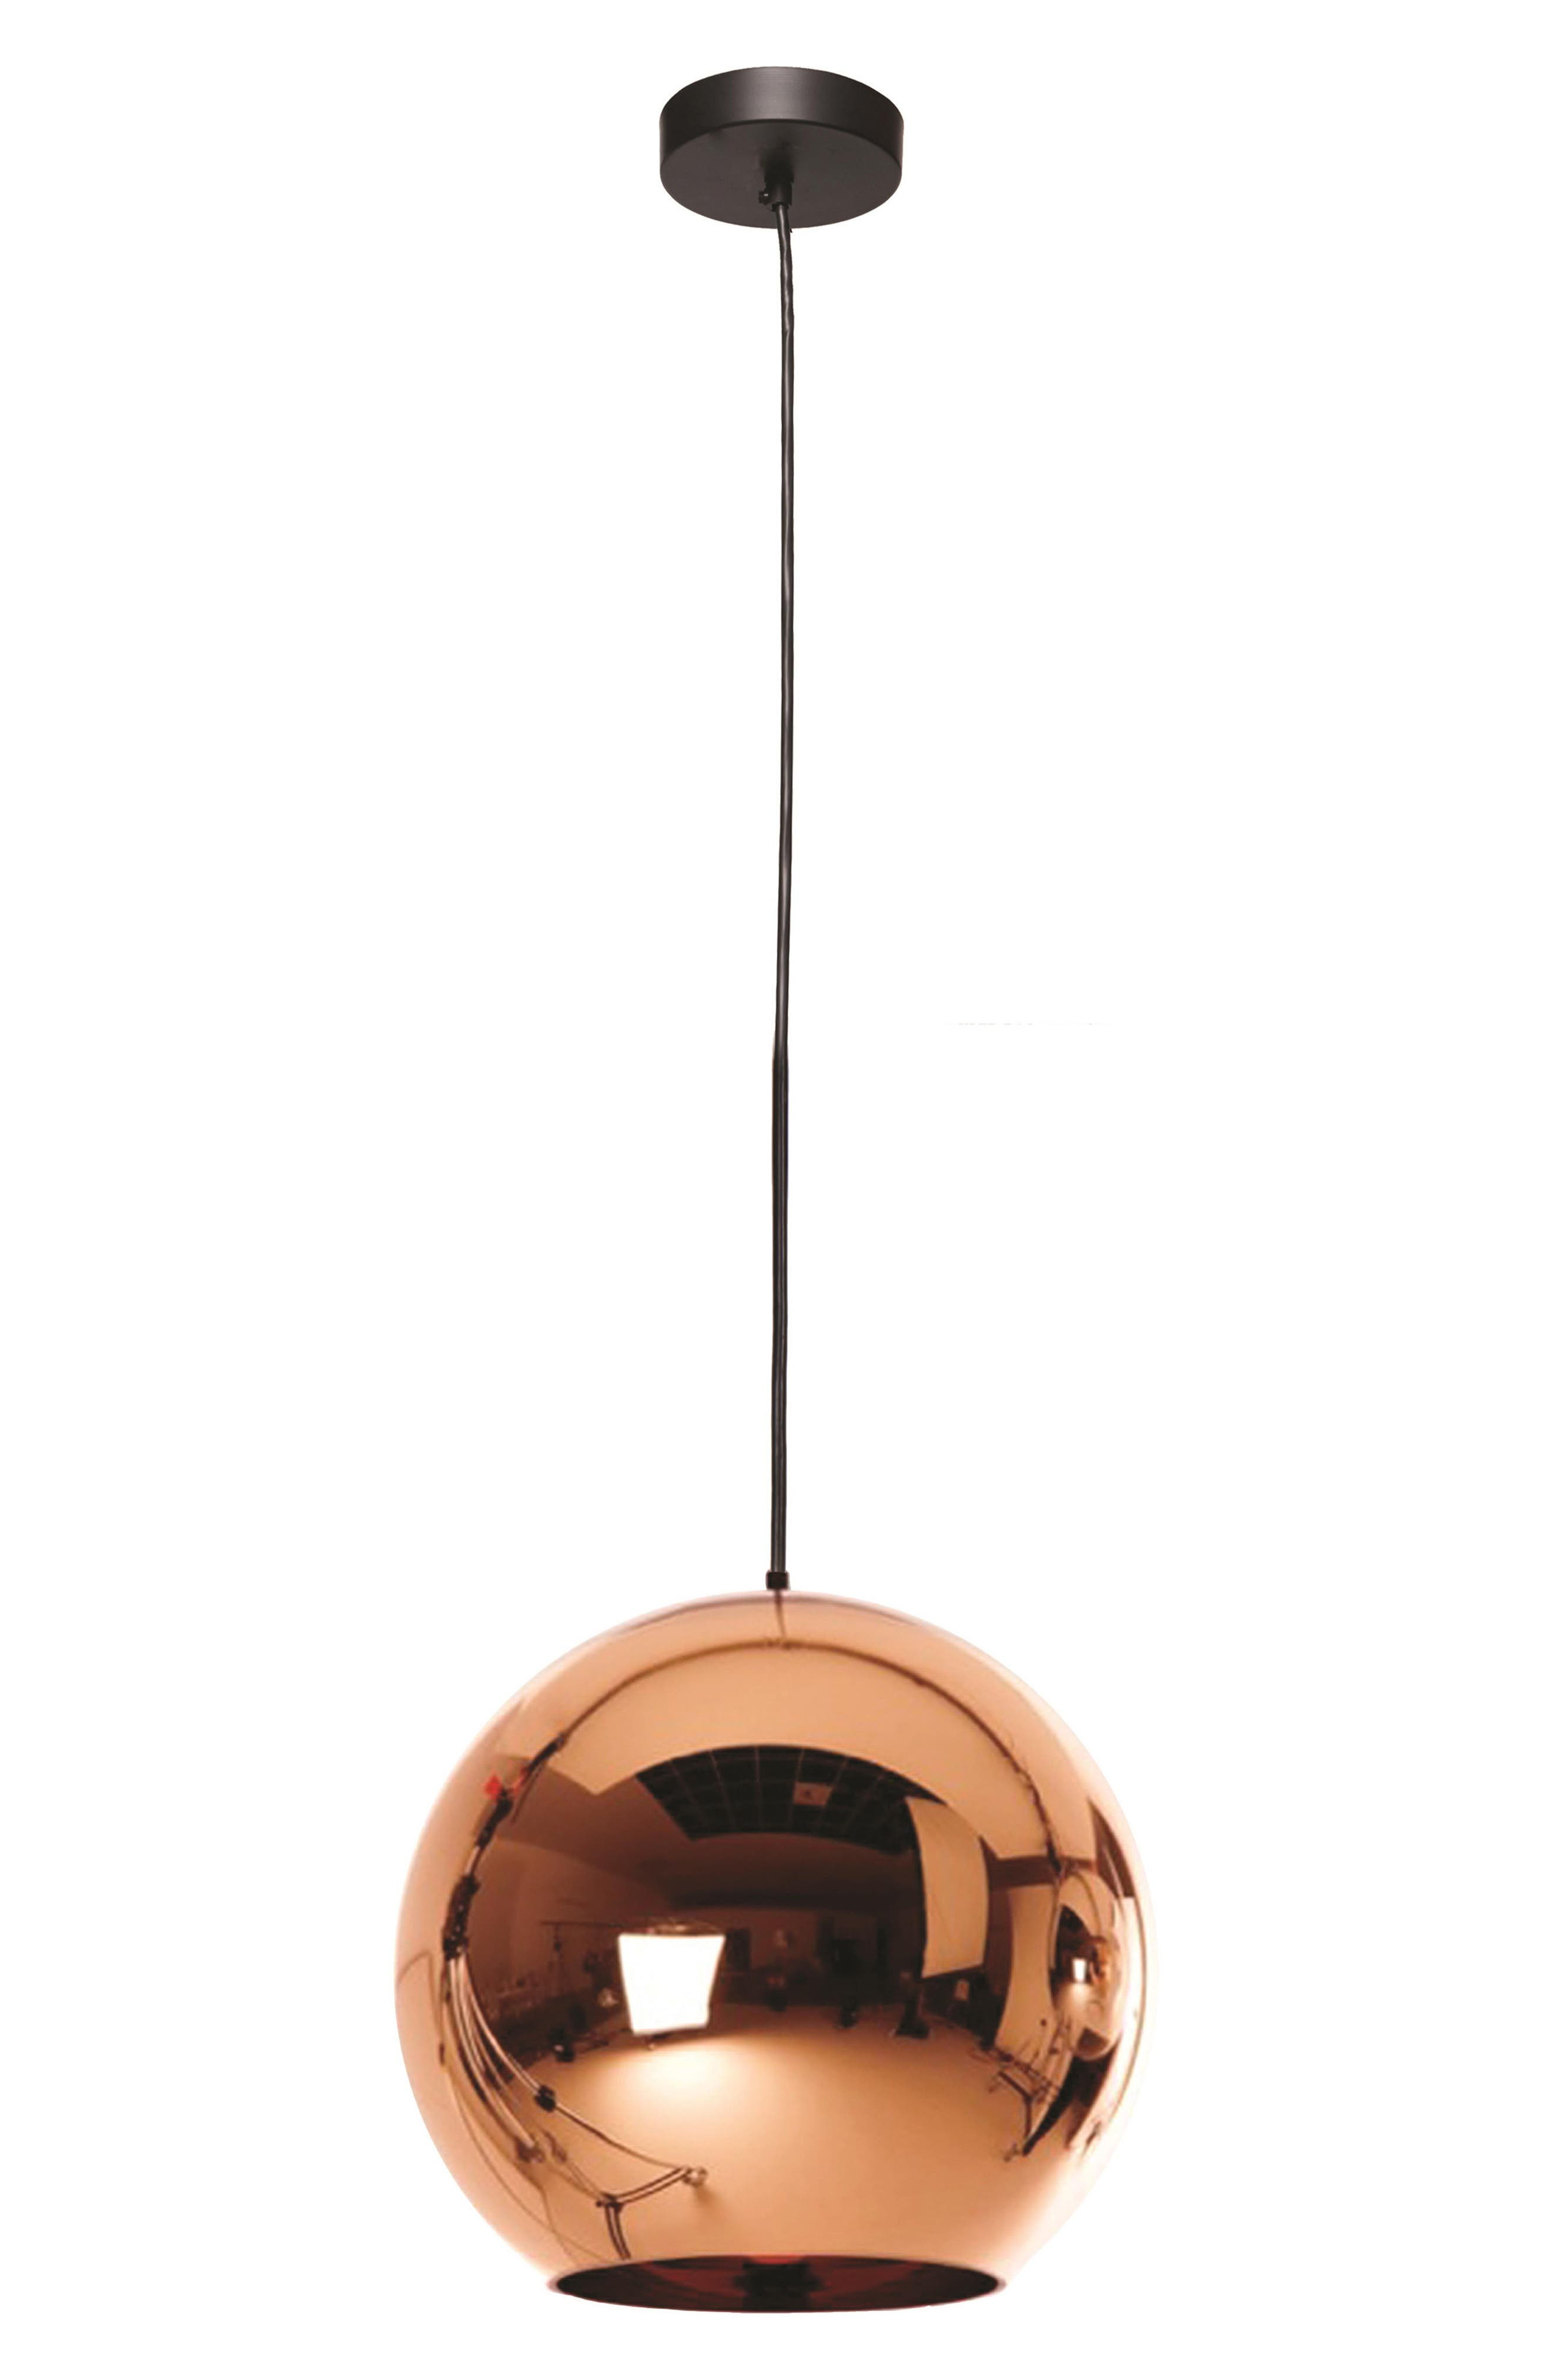 Copper Ceiling Light Fixture,                         Main,                         color, Copper